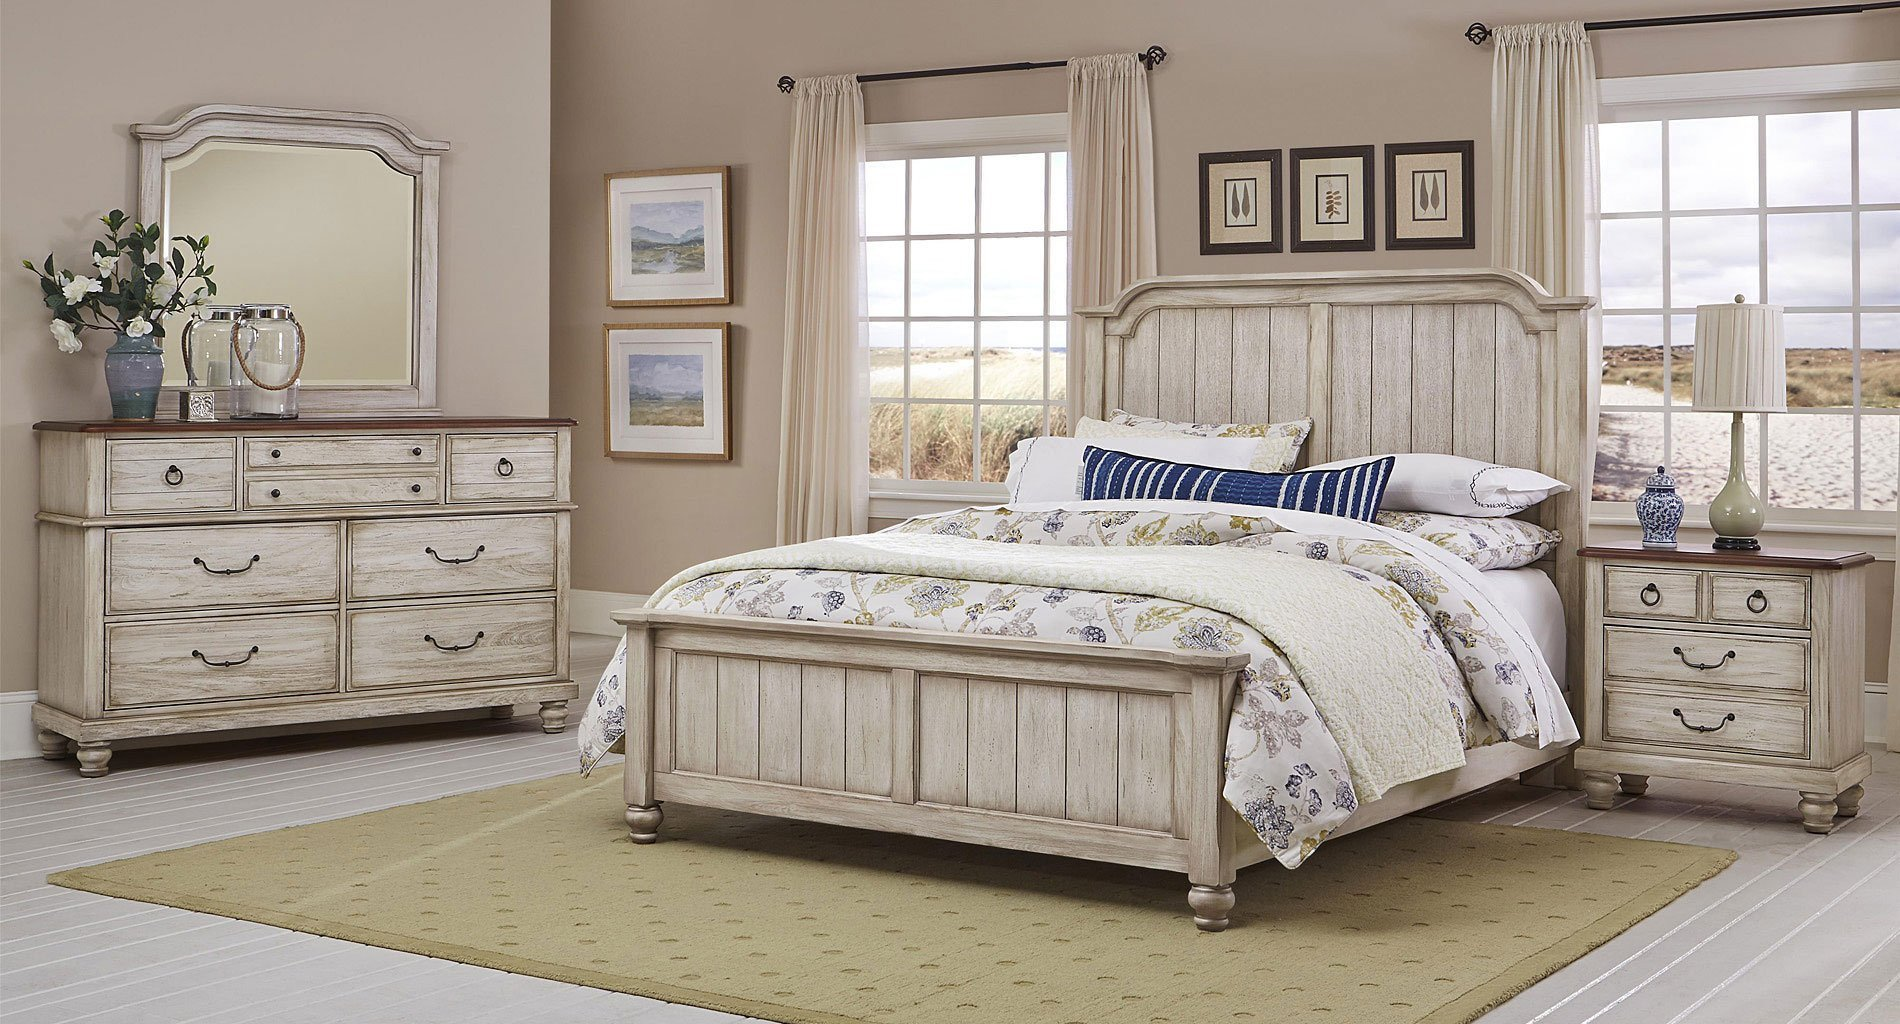 Distressed White Bedroom Furniture Beautiful Distressed F White Bedroom Furniture